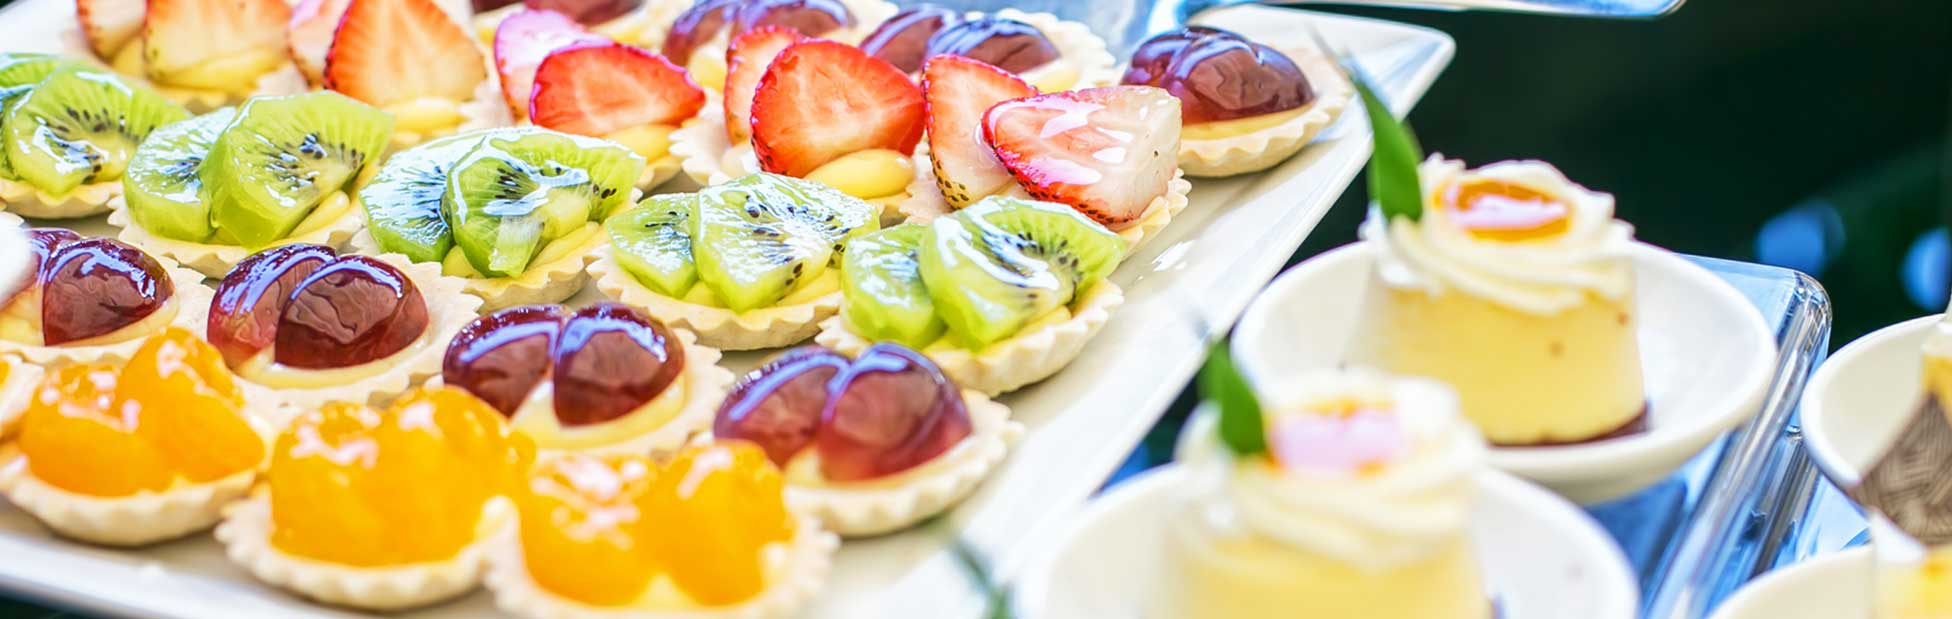 Variety of fruit topped treats on square plate